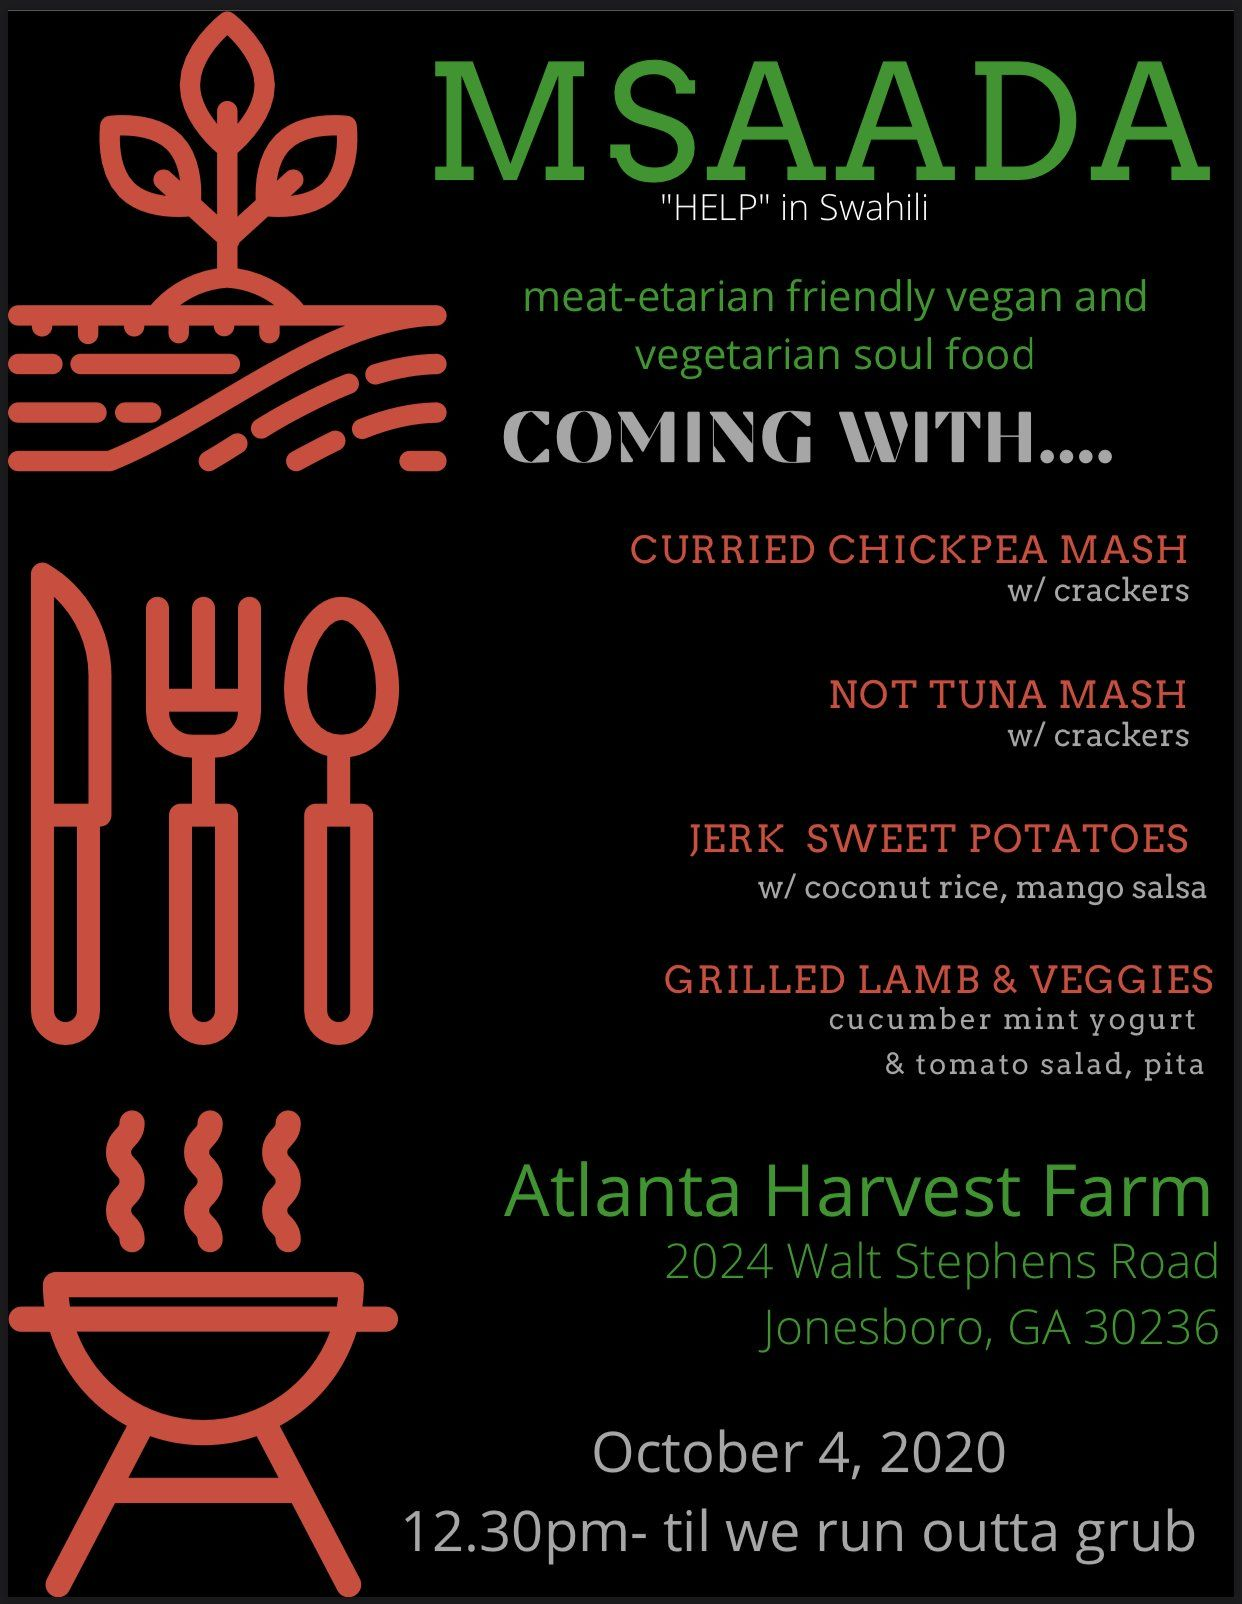 Previous Happening: This week at the farm!